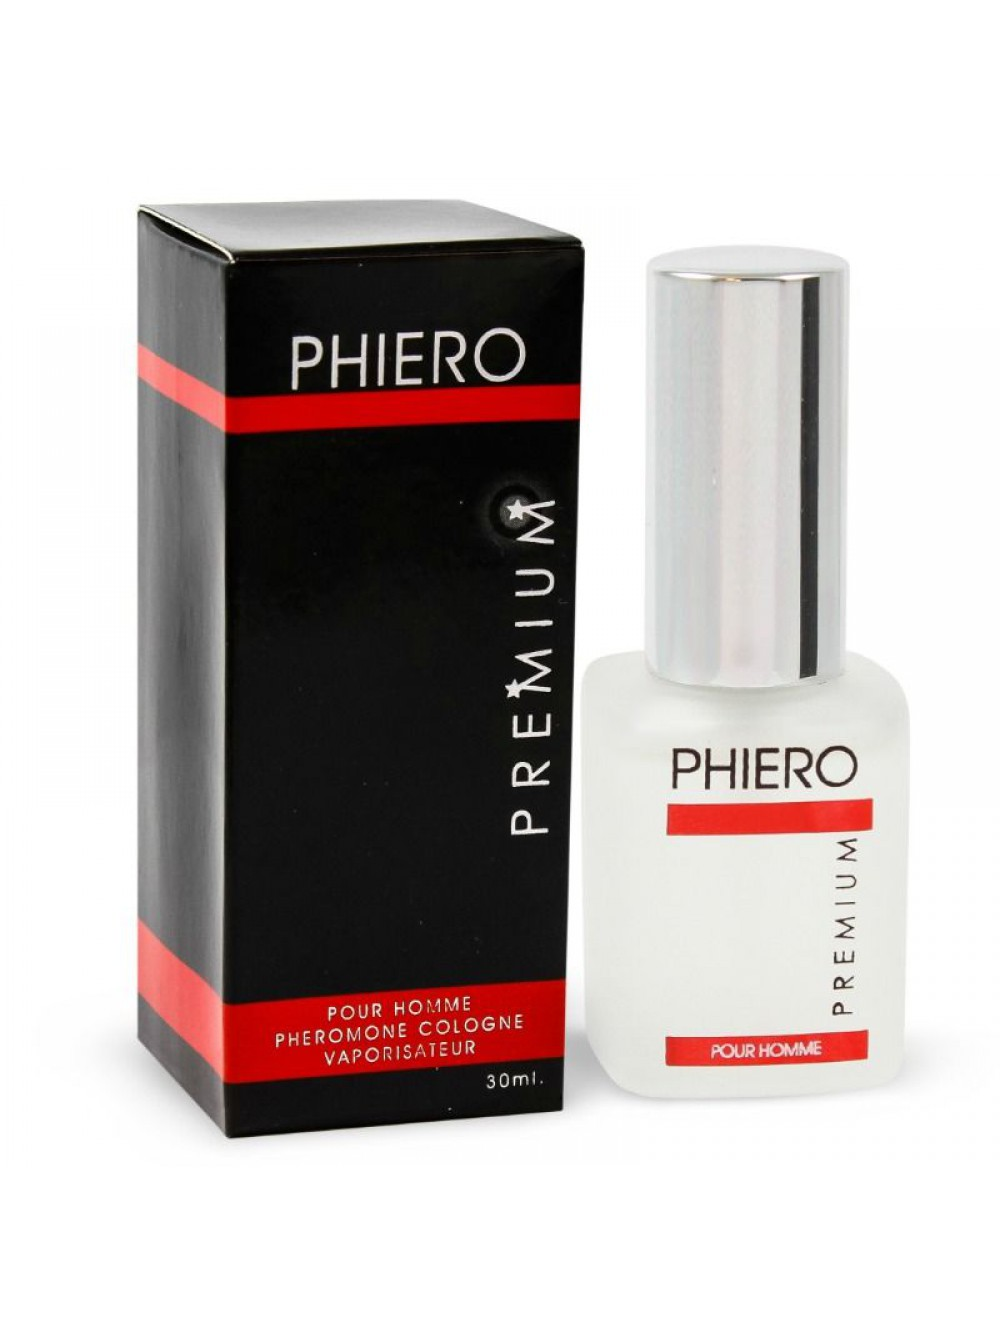 PHIERO PREMIUM. PERFUME WITH PHEROMONES FOR MEN